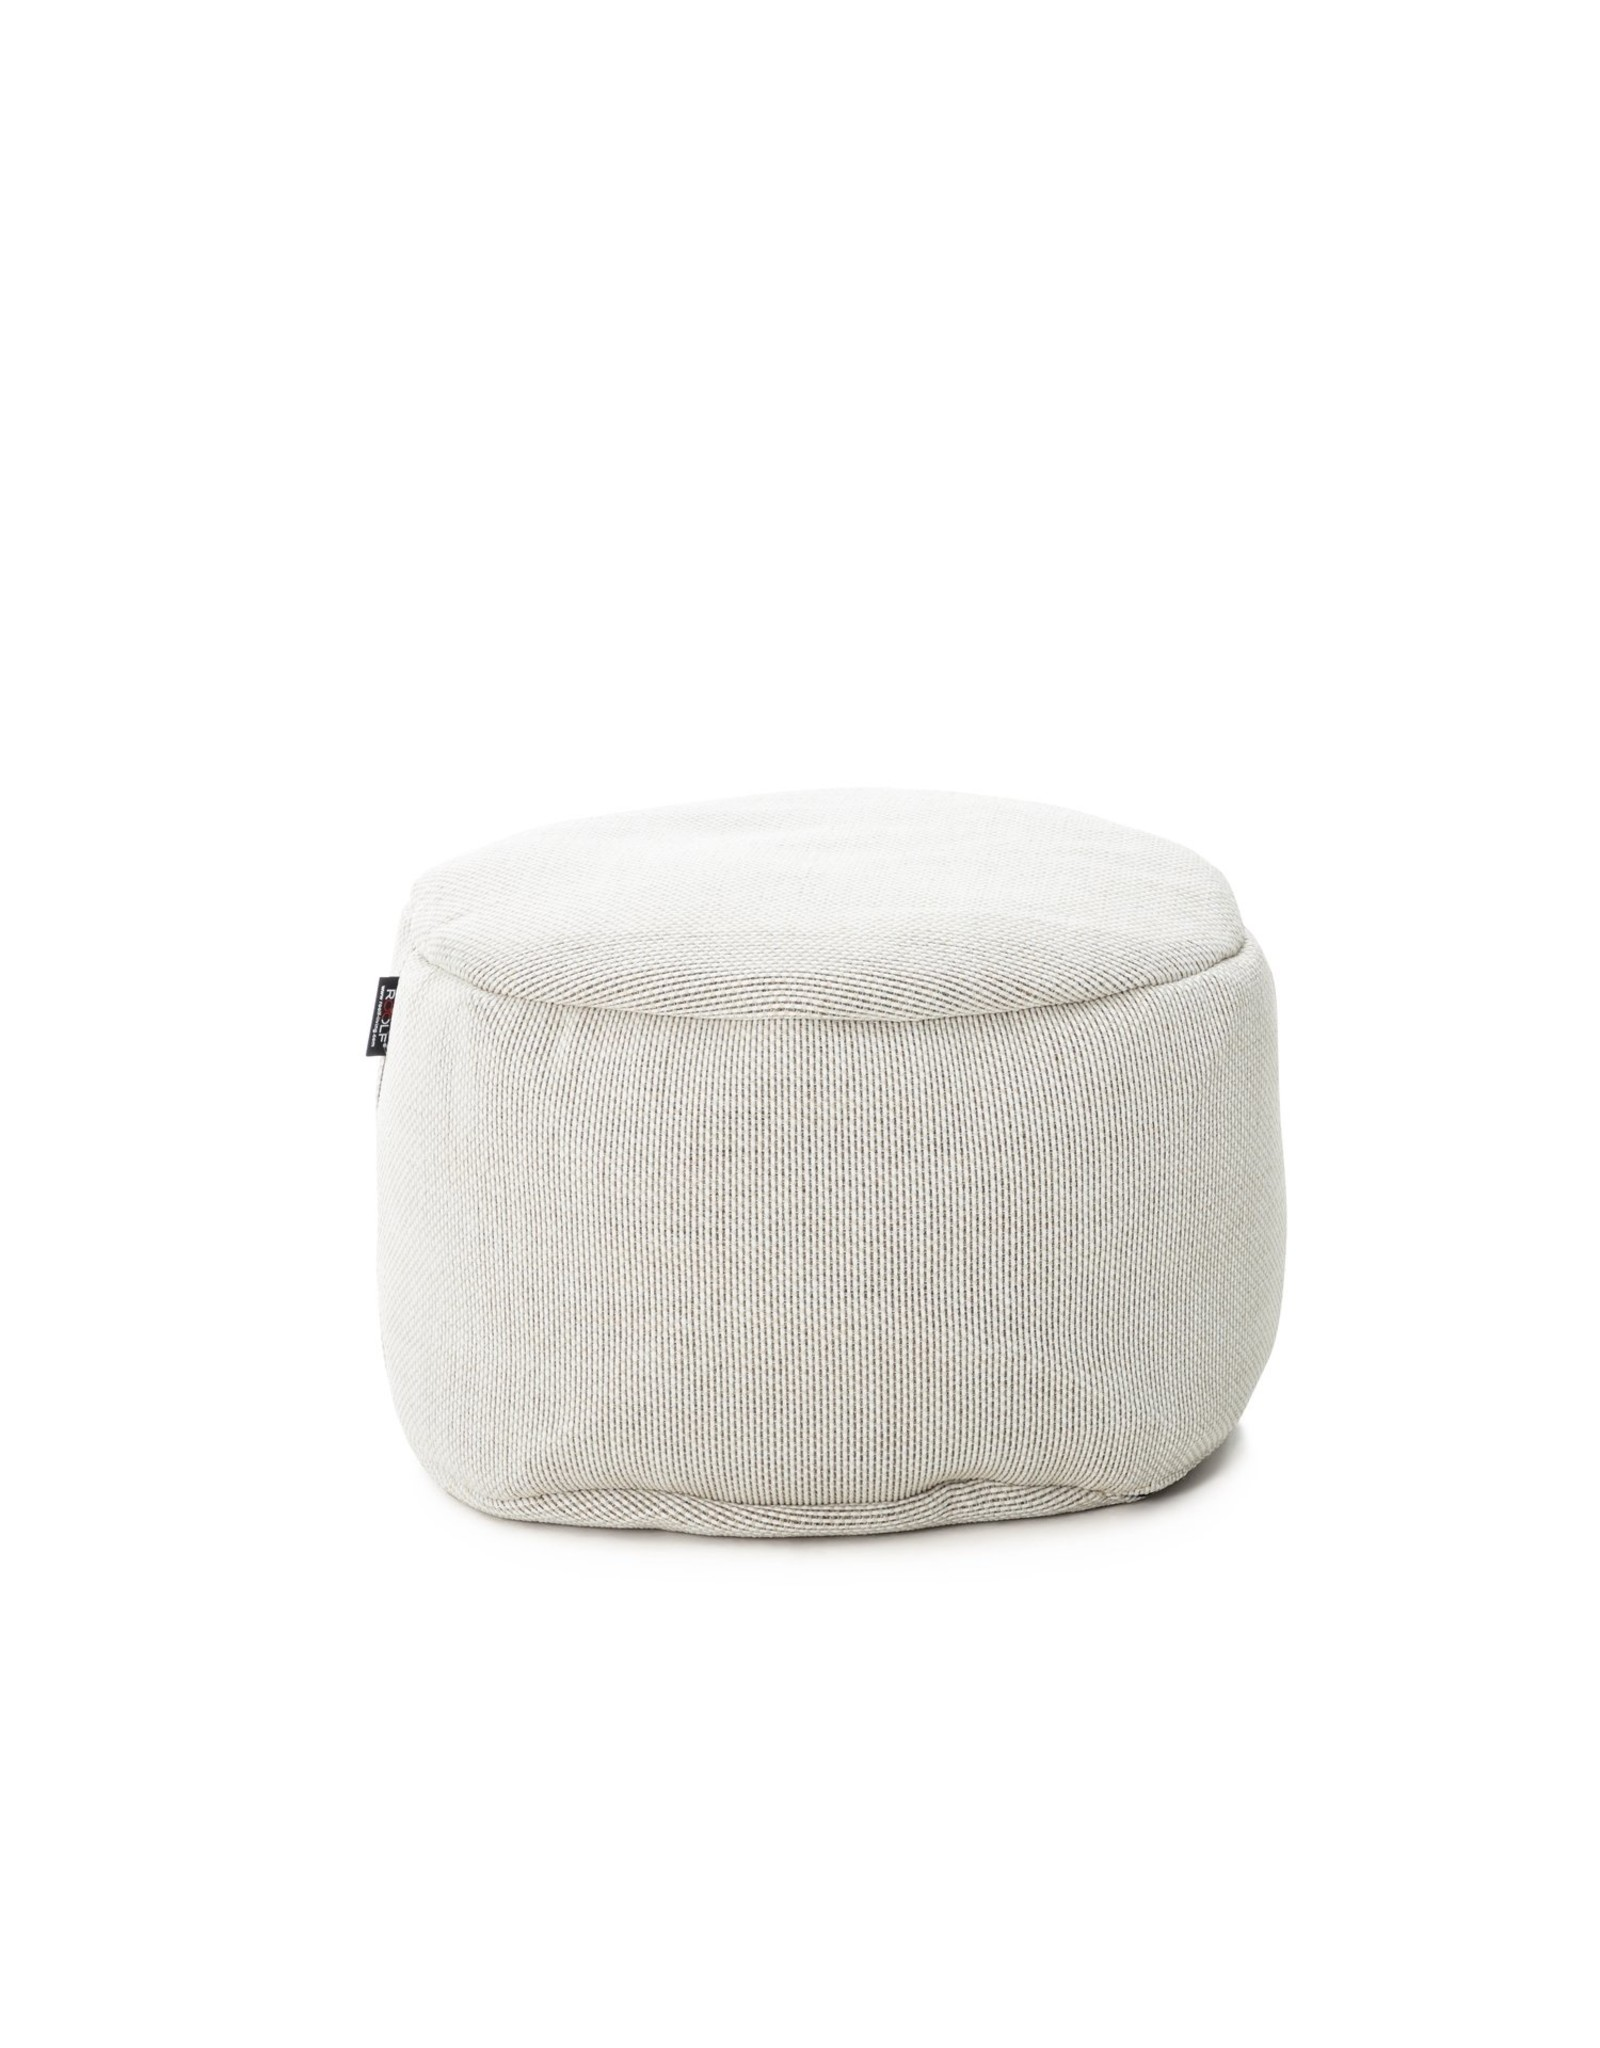 ROOLF LIVING DOTTY ROUND 50 CM - WIT